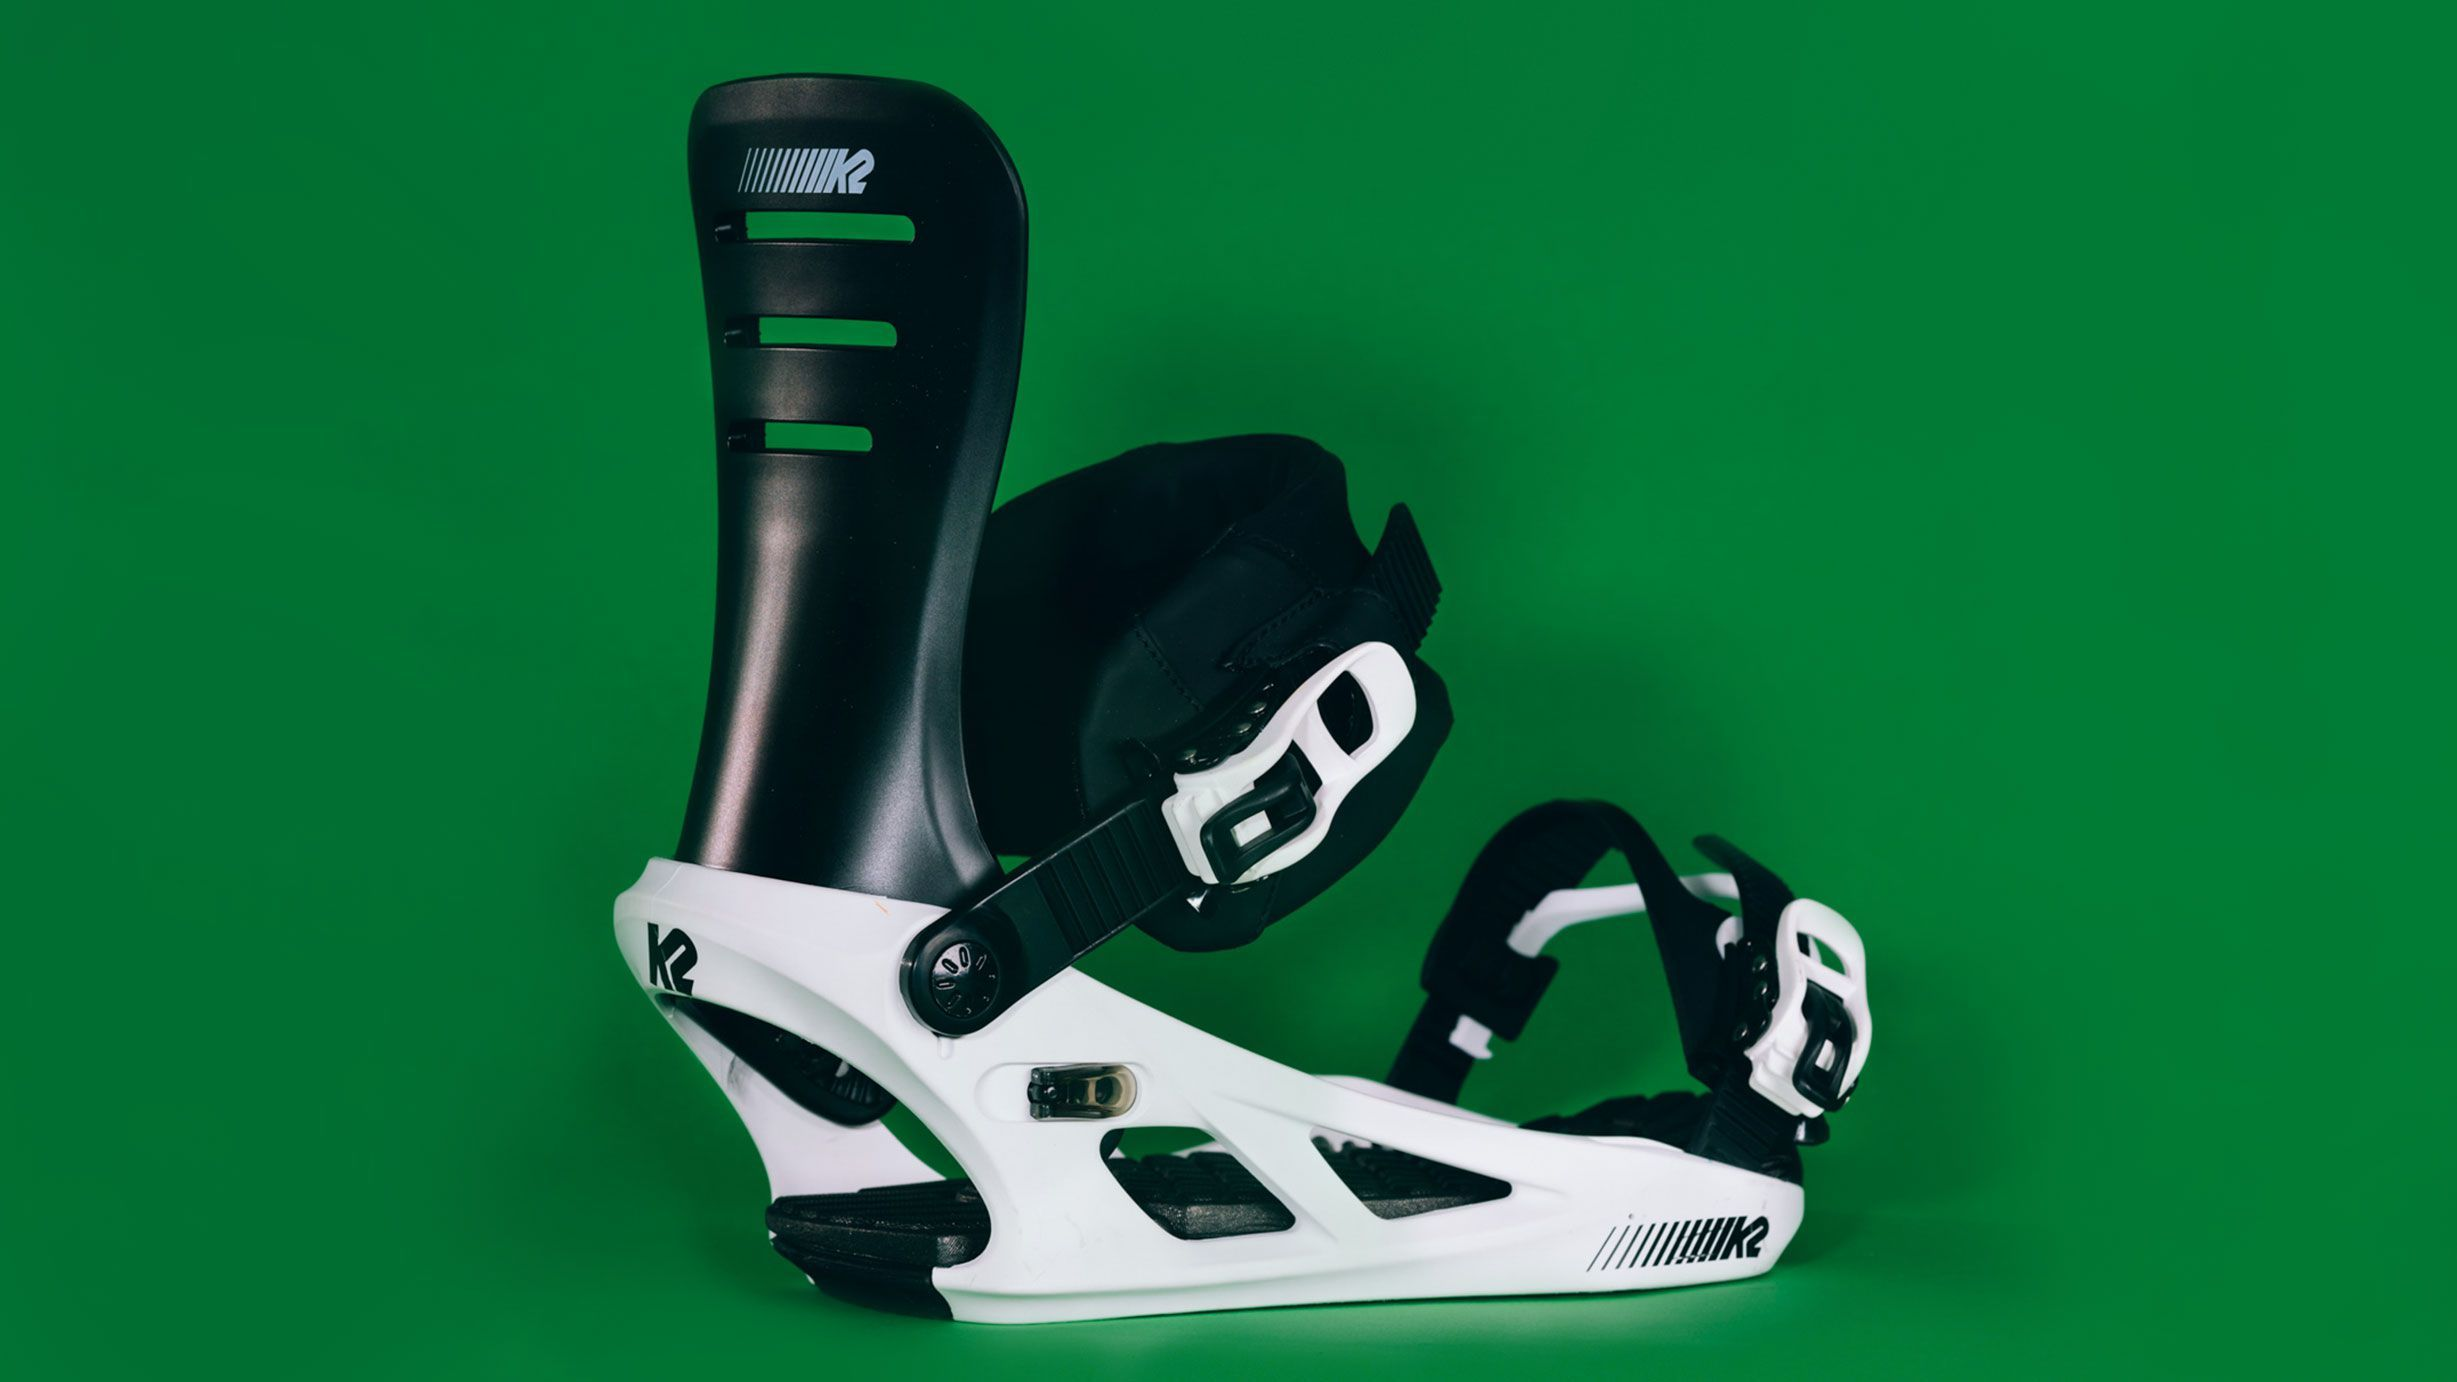 1f334264450d An in-depth review of the K2 Formula snowboard bindings for 2017-2018 -  tried and tested by the Whitelines Team